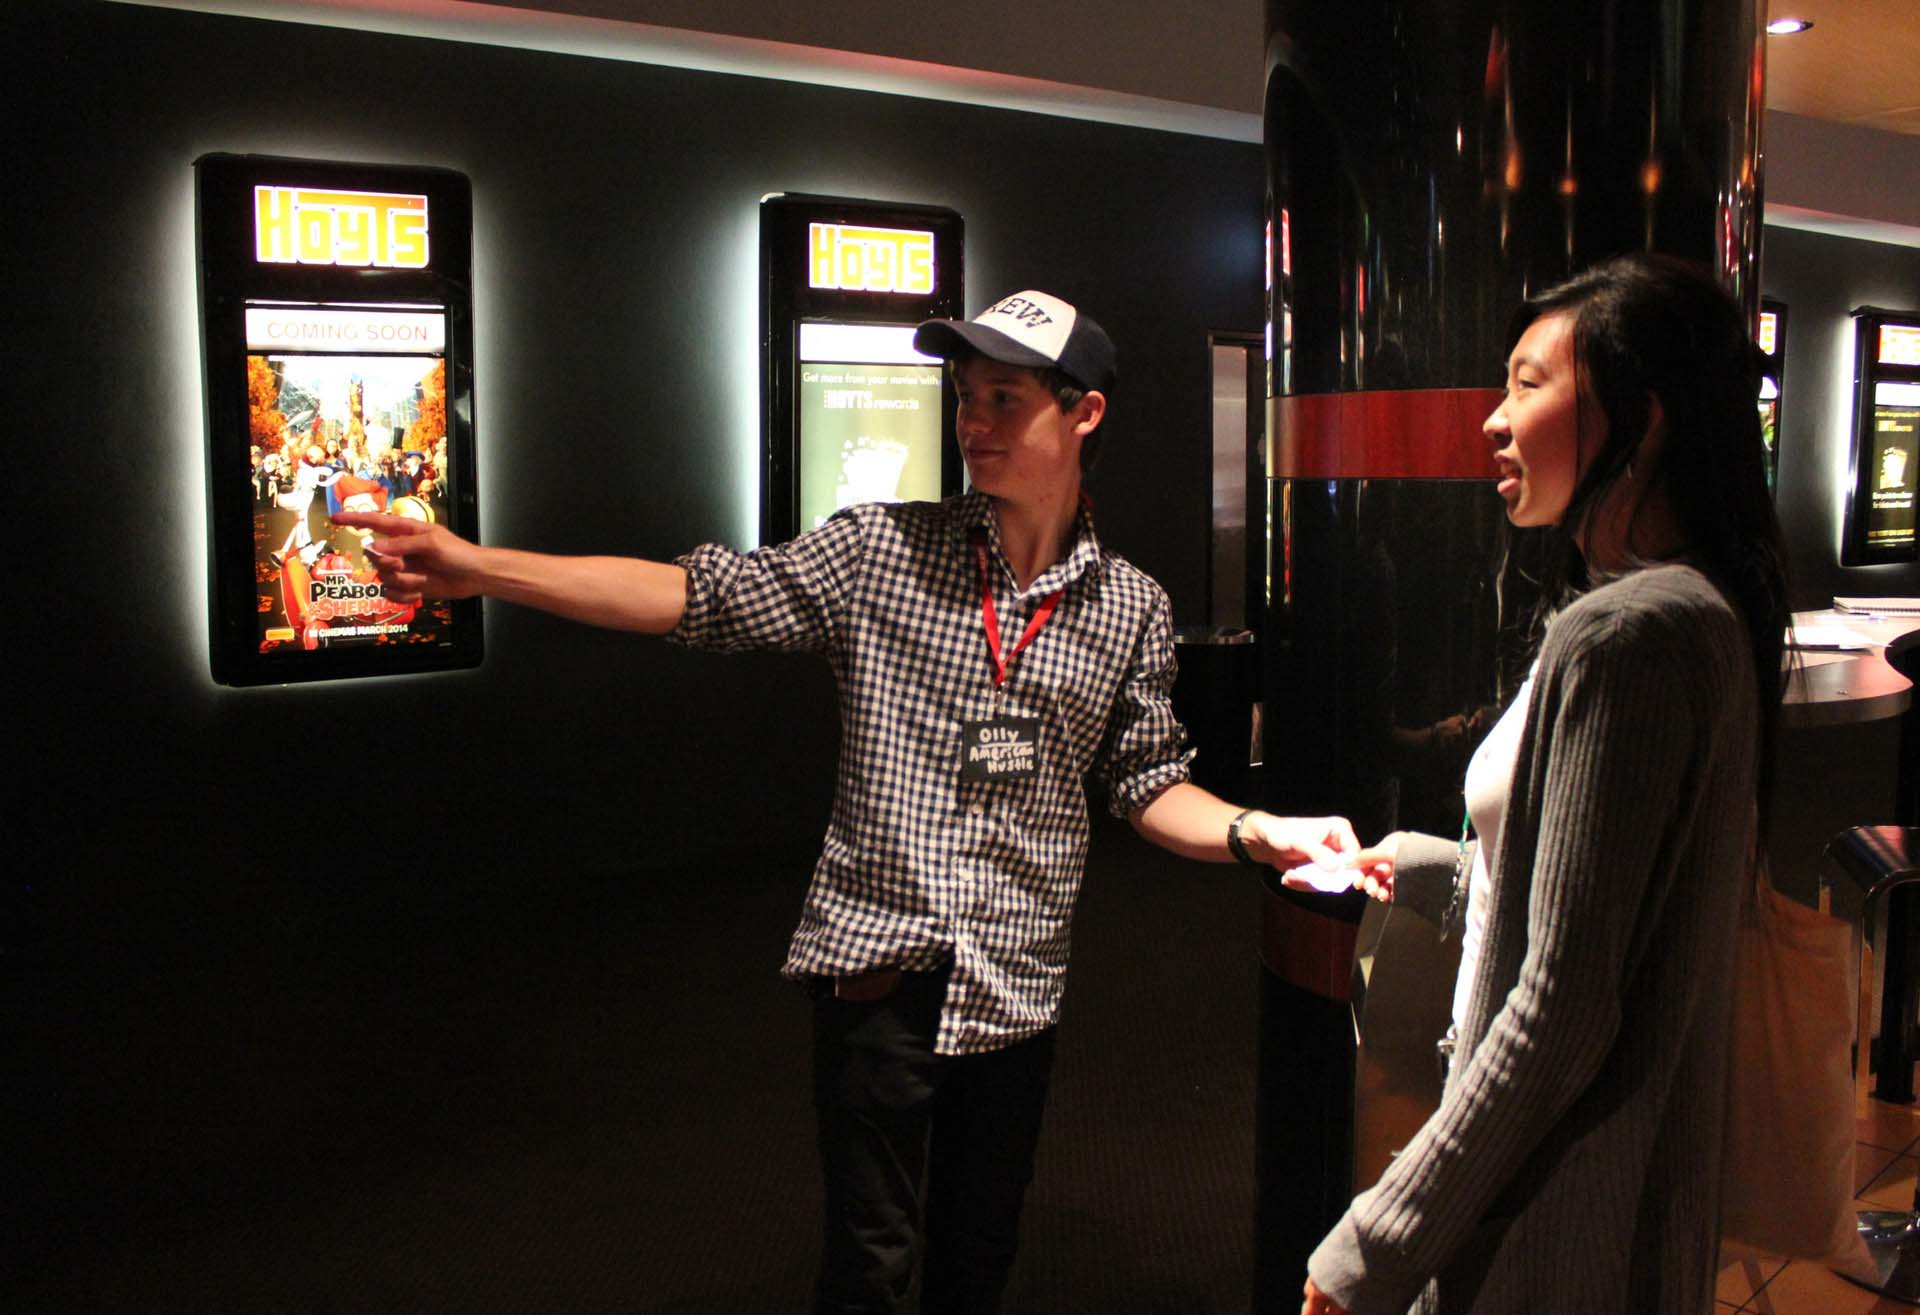 Hoyts employee directing a customer